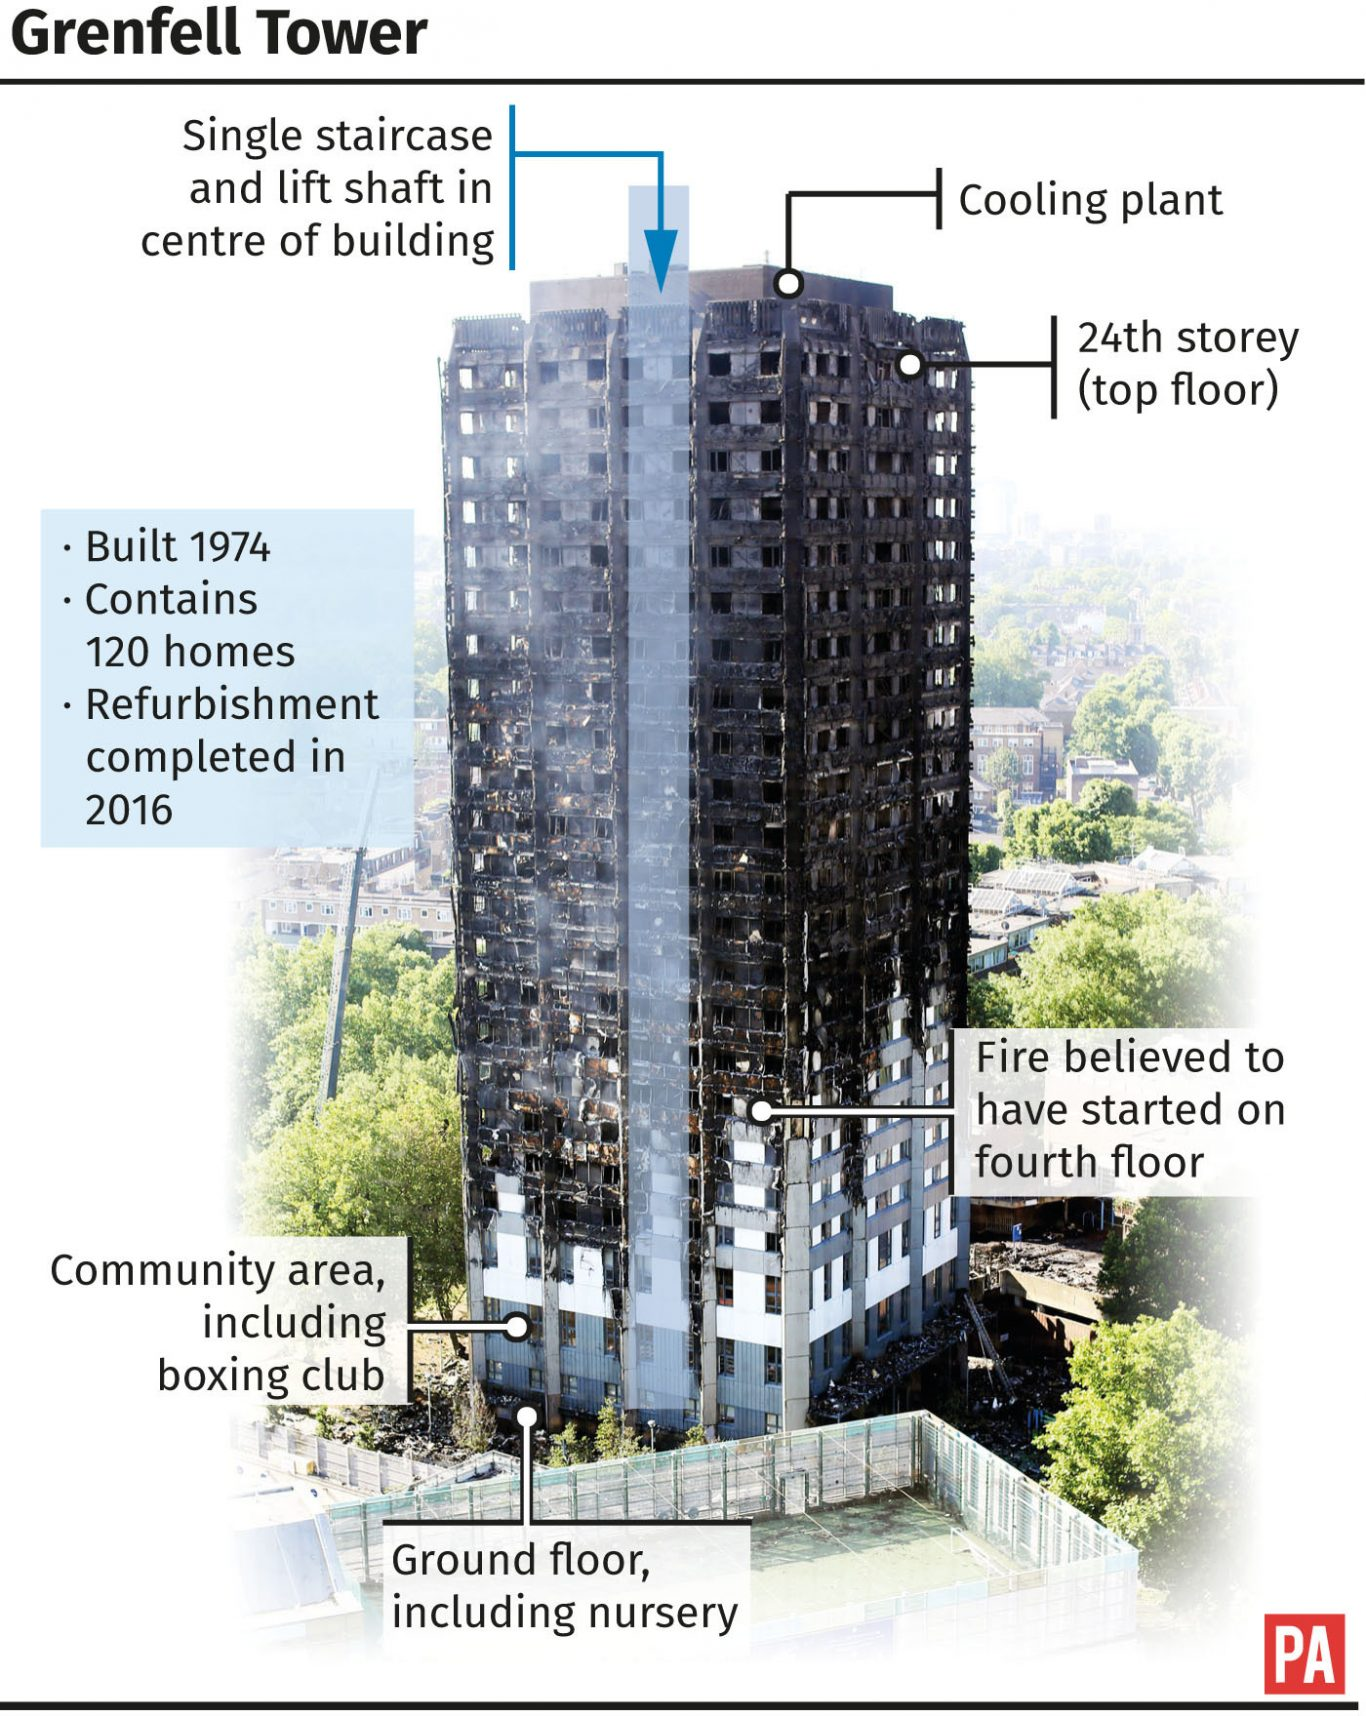 79 feared dead in London tower fire